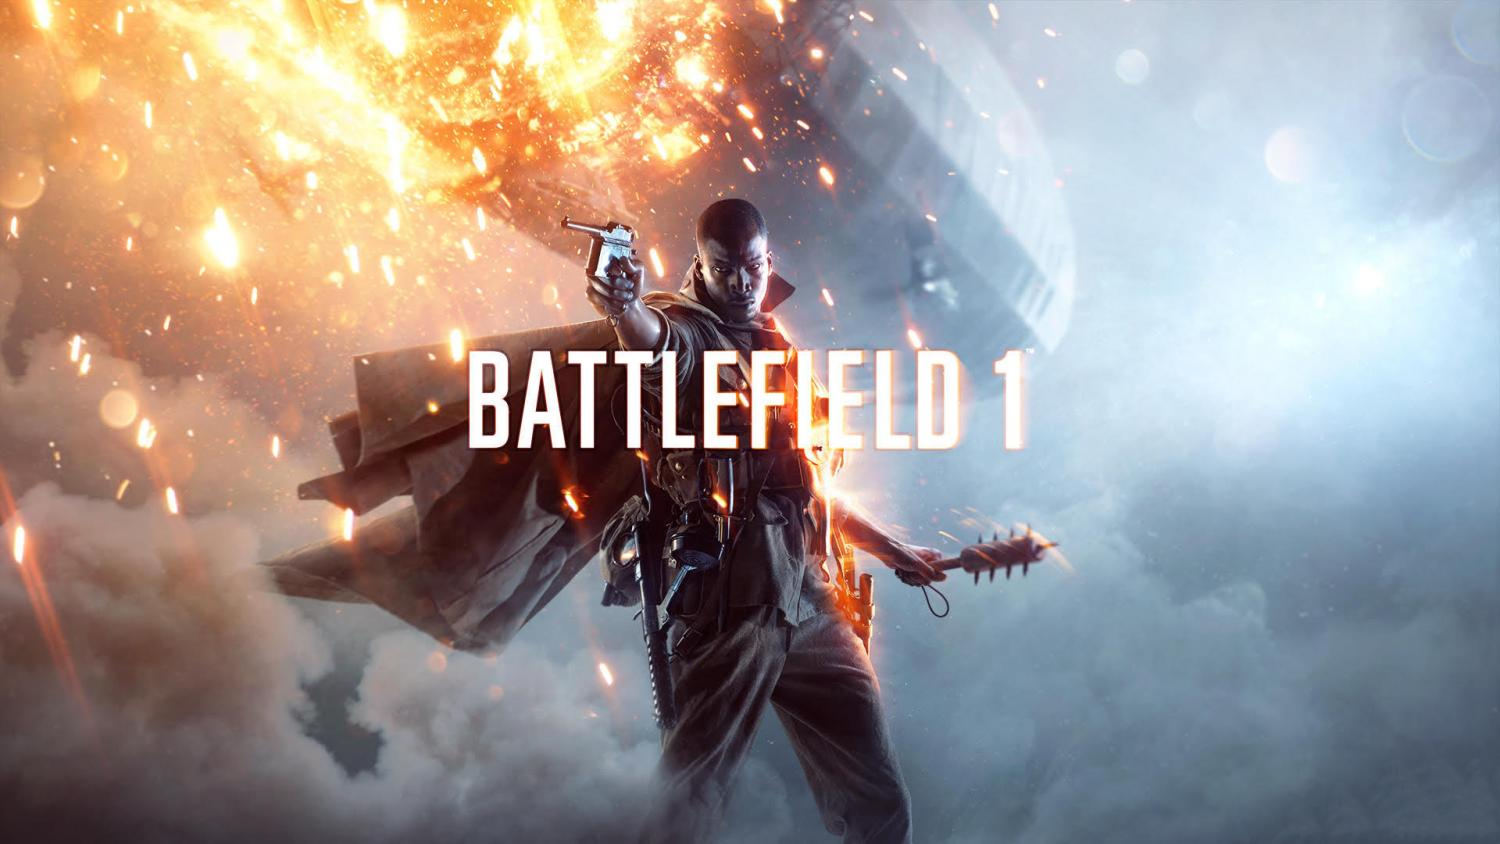 Official Battlefield 1 Cover Photo.  Image provided by EA DICE, the official developer of Battlefield 1.